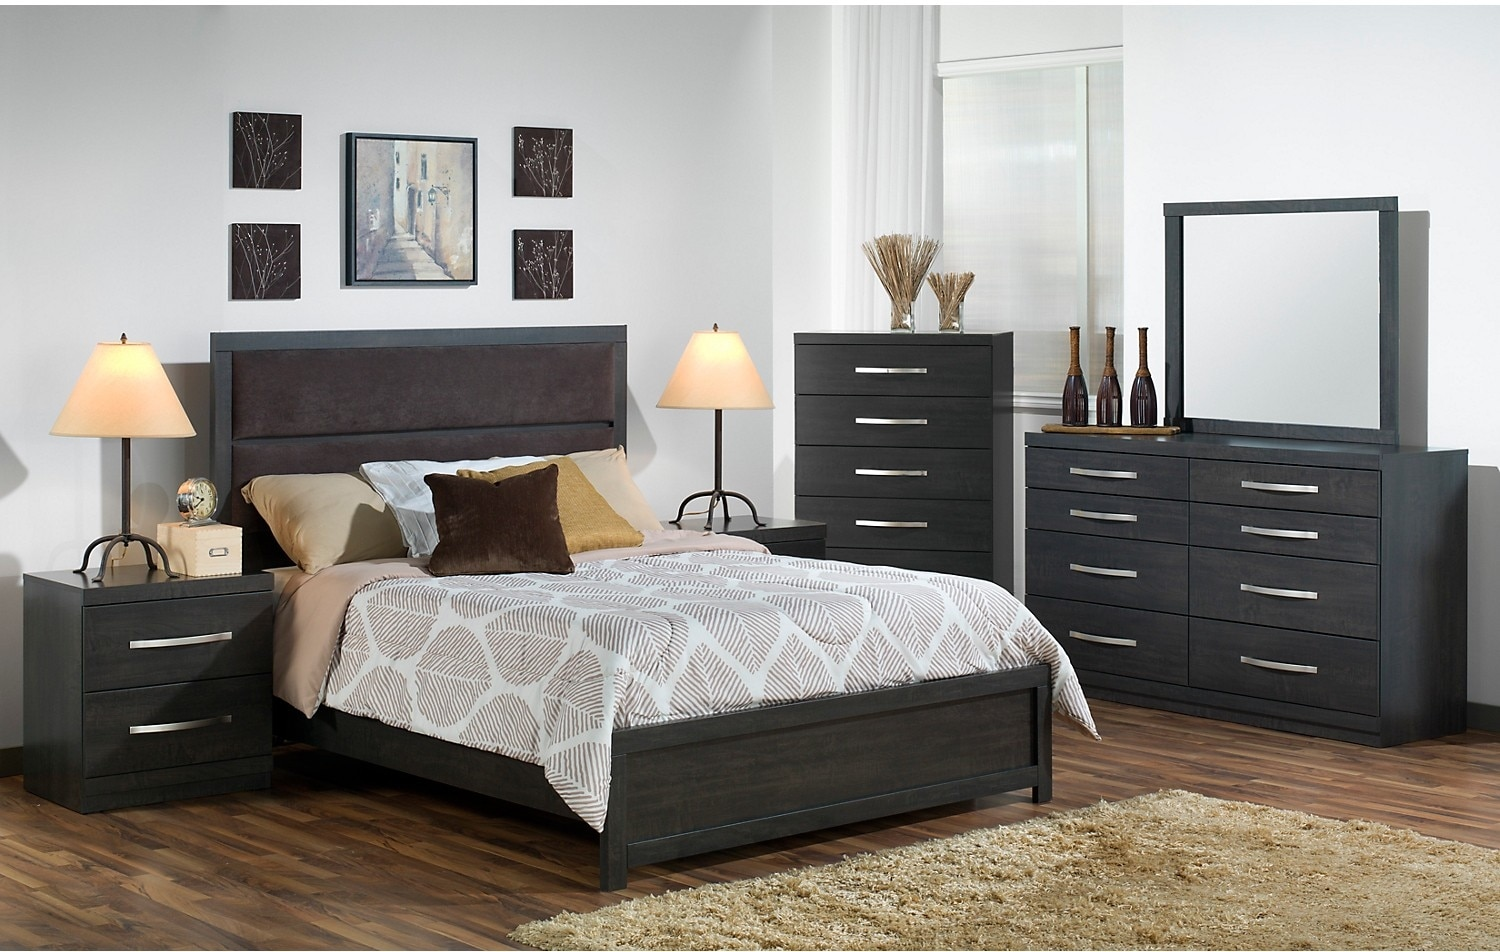 Willowdale king 7 piece bedroom package the brick for Bedroom furniture packages